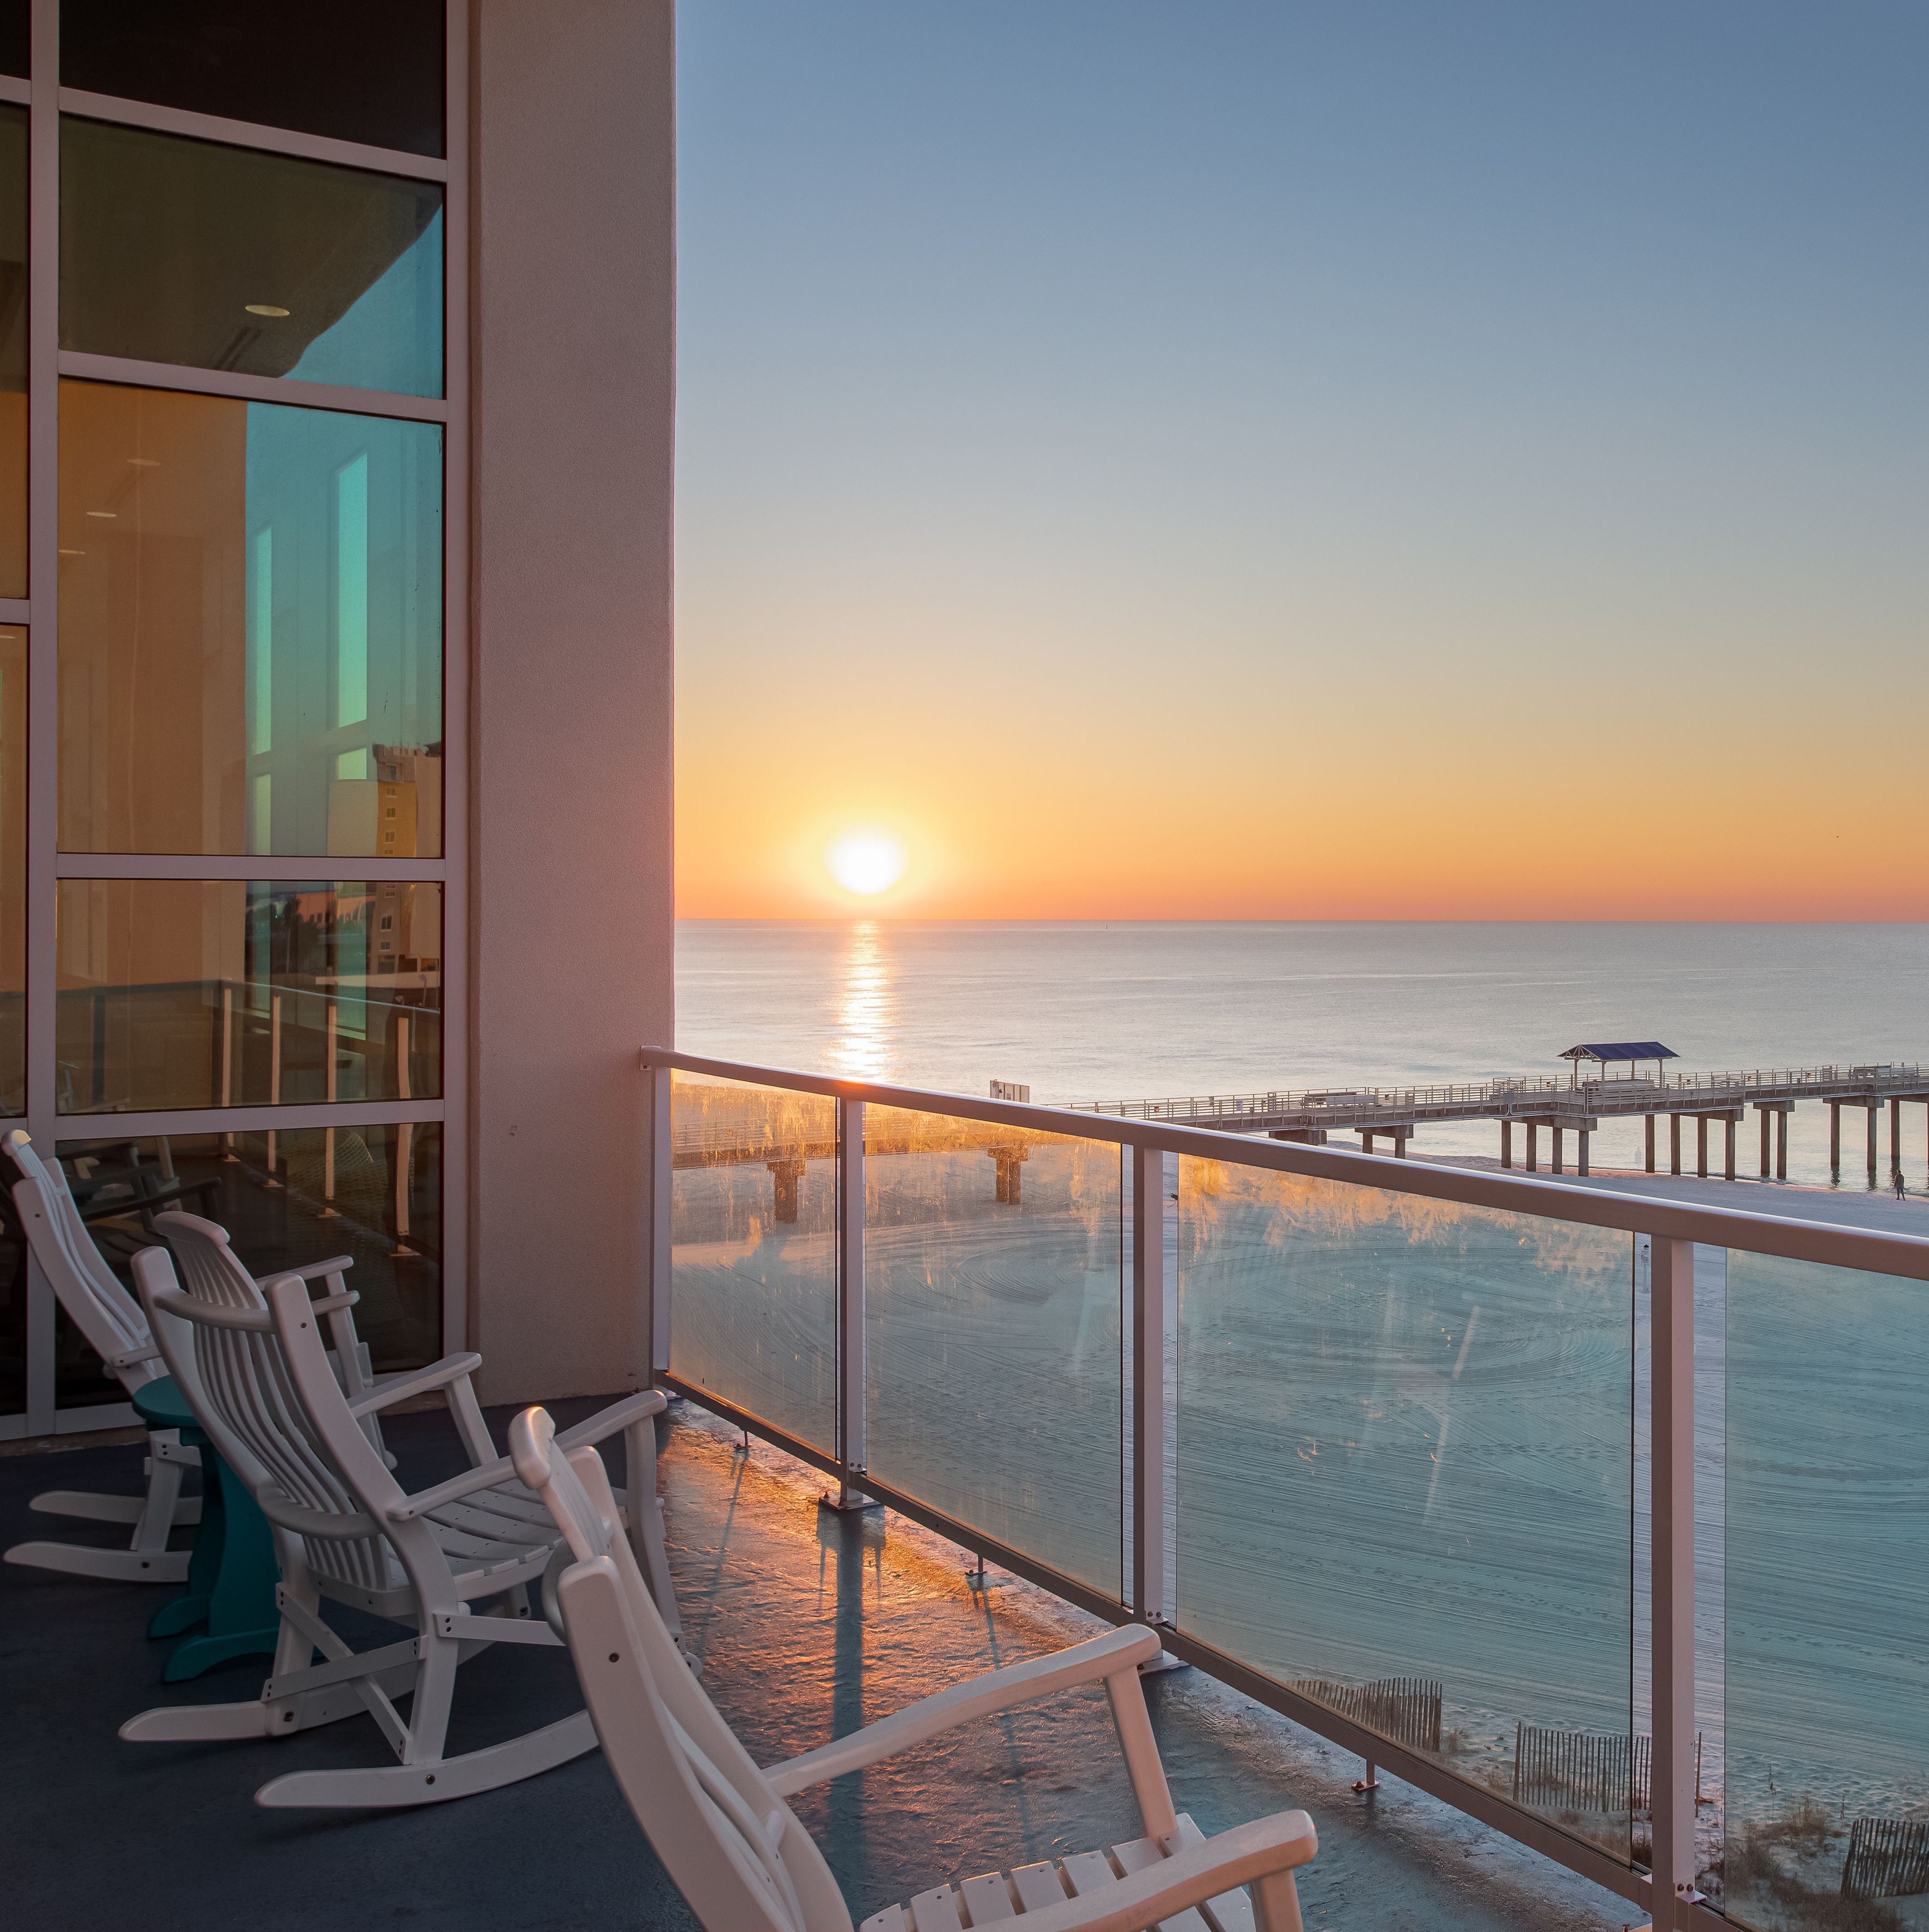 Experience The Splendor Of A Winter Evening From The Sunset Deck Of Our Tideshotelob In Orange Beach Alabama Hotel Sunset Tides Hotel Hotel